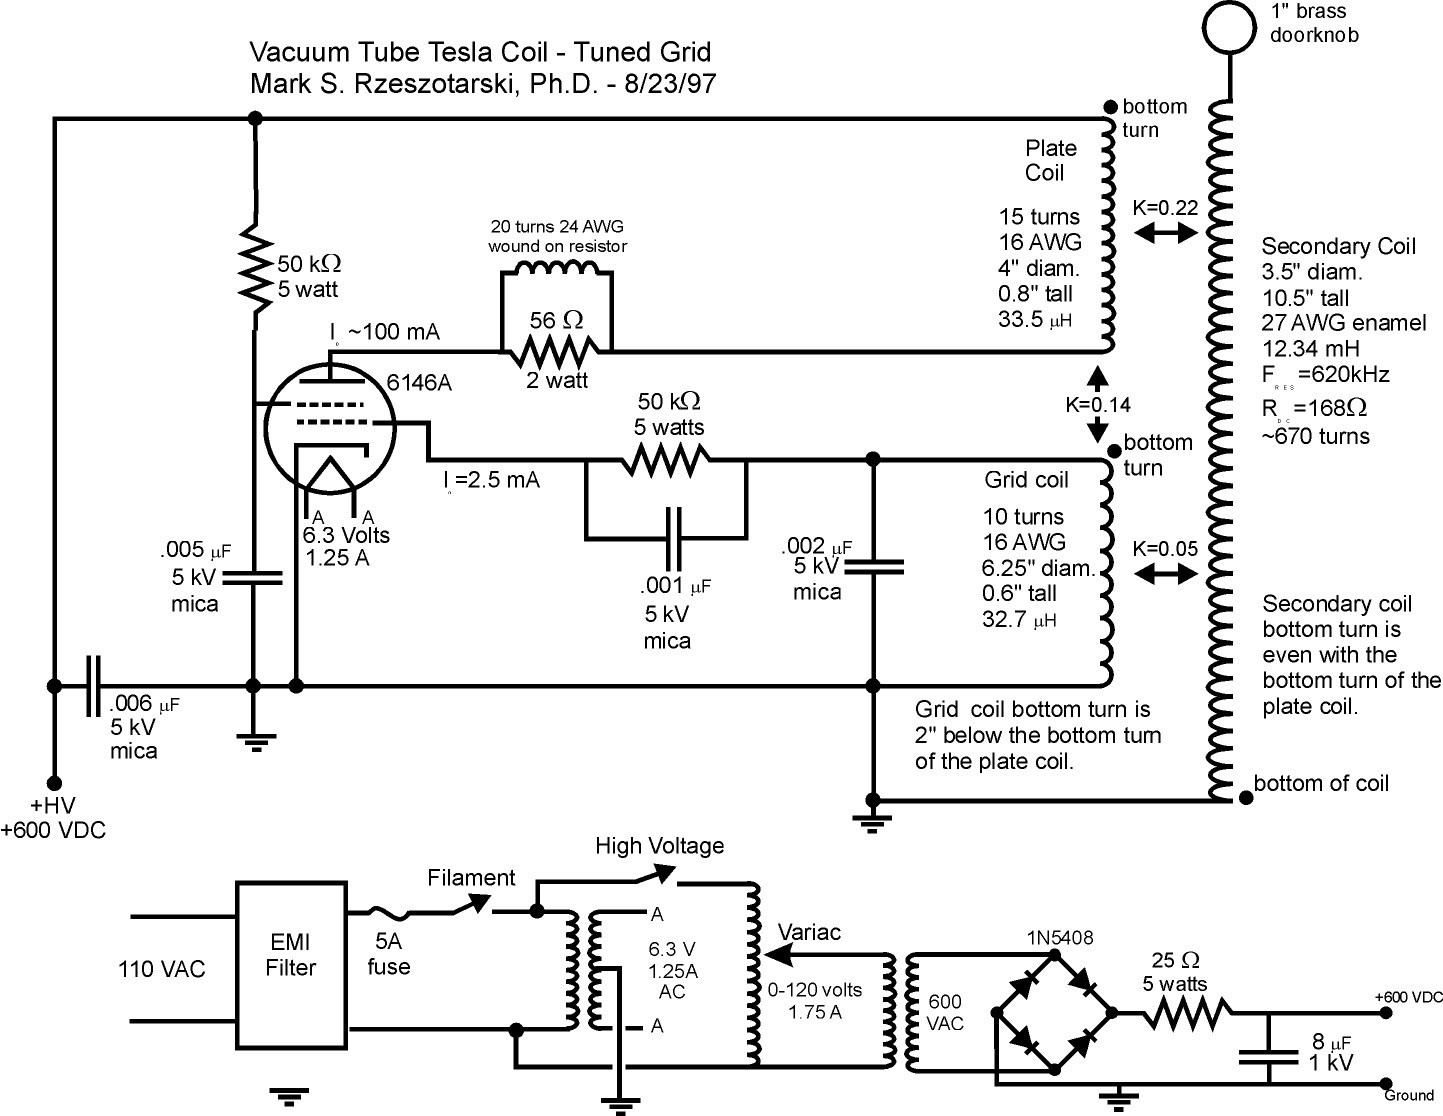 Tesla Coil Circuit Page 3 Power Supply Circuits Gt Automatic Light Dimmer L46766 Nextgr Miniature Vacuum Tube